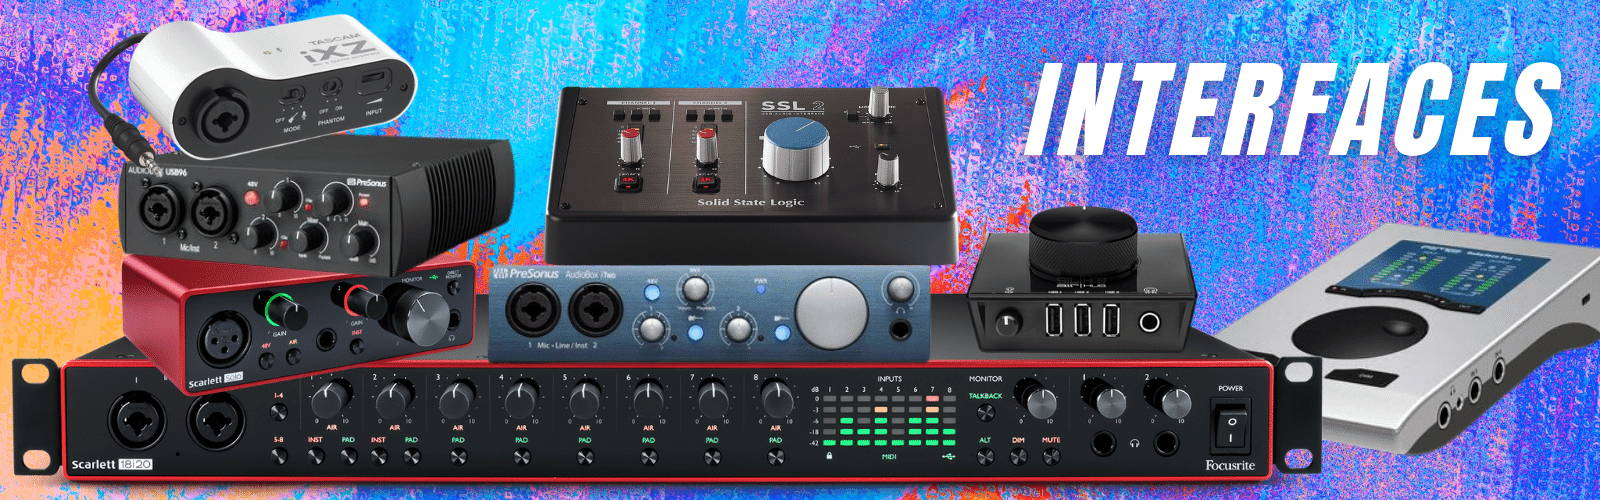 USB interfaces and recording interfaces in stock at emi audio